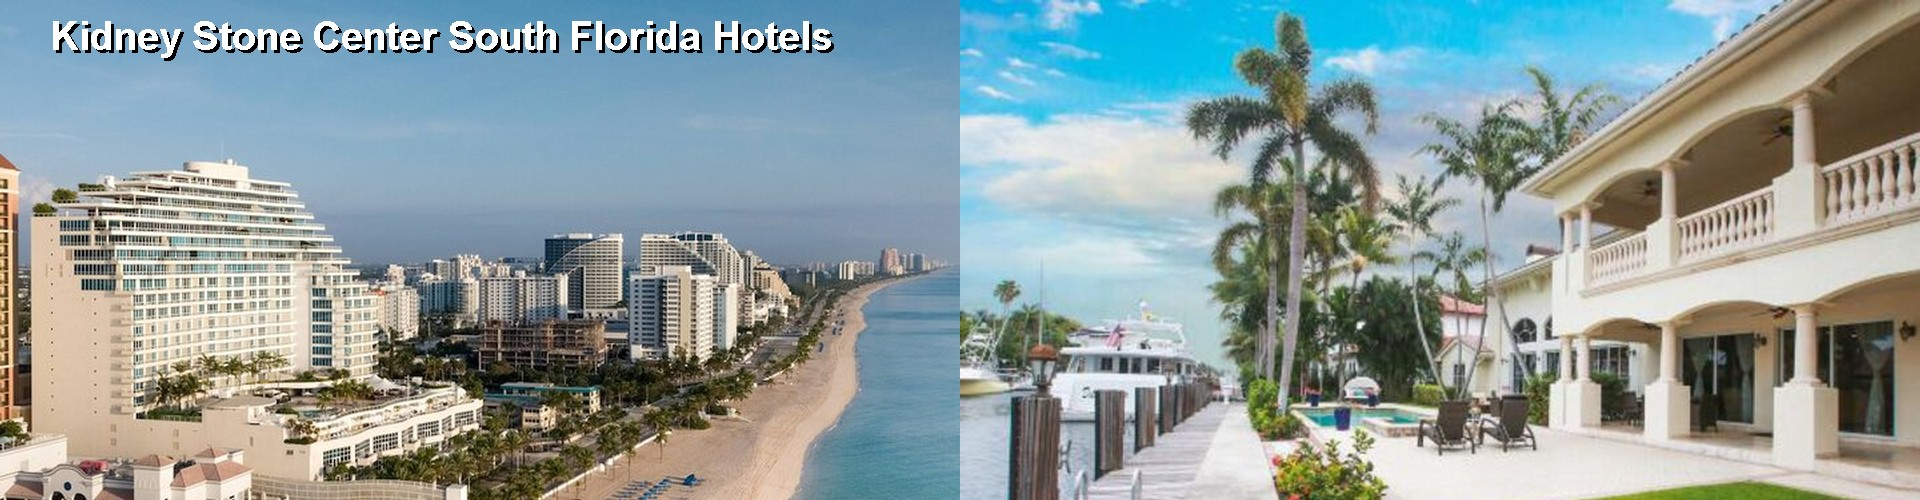 5 Best Hotels near Kidney Stone Center South Florida